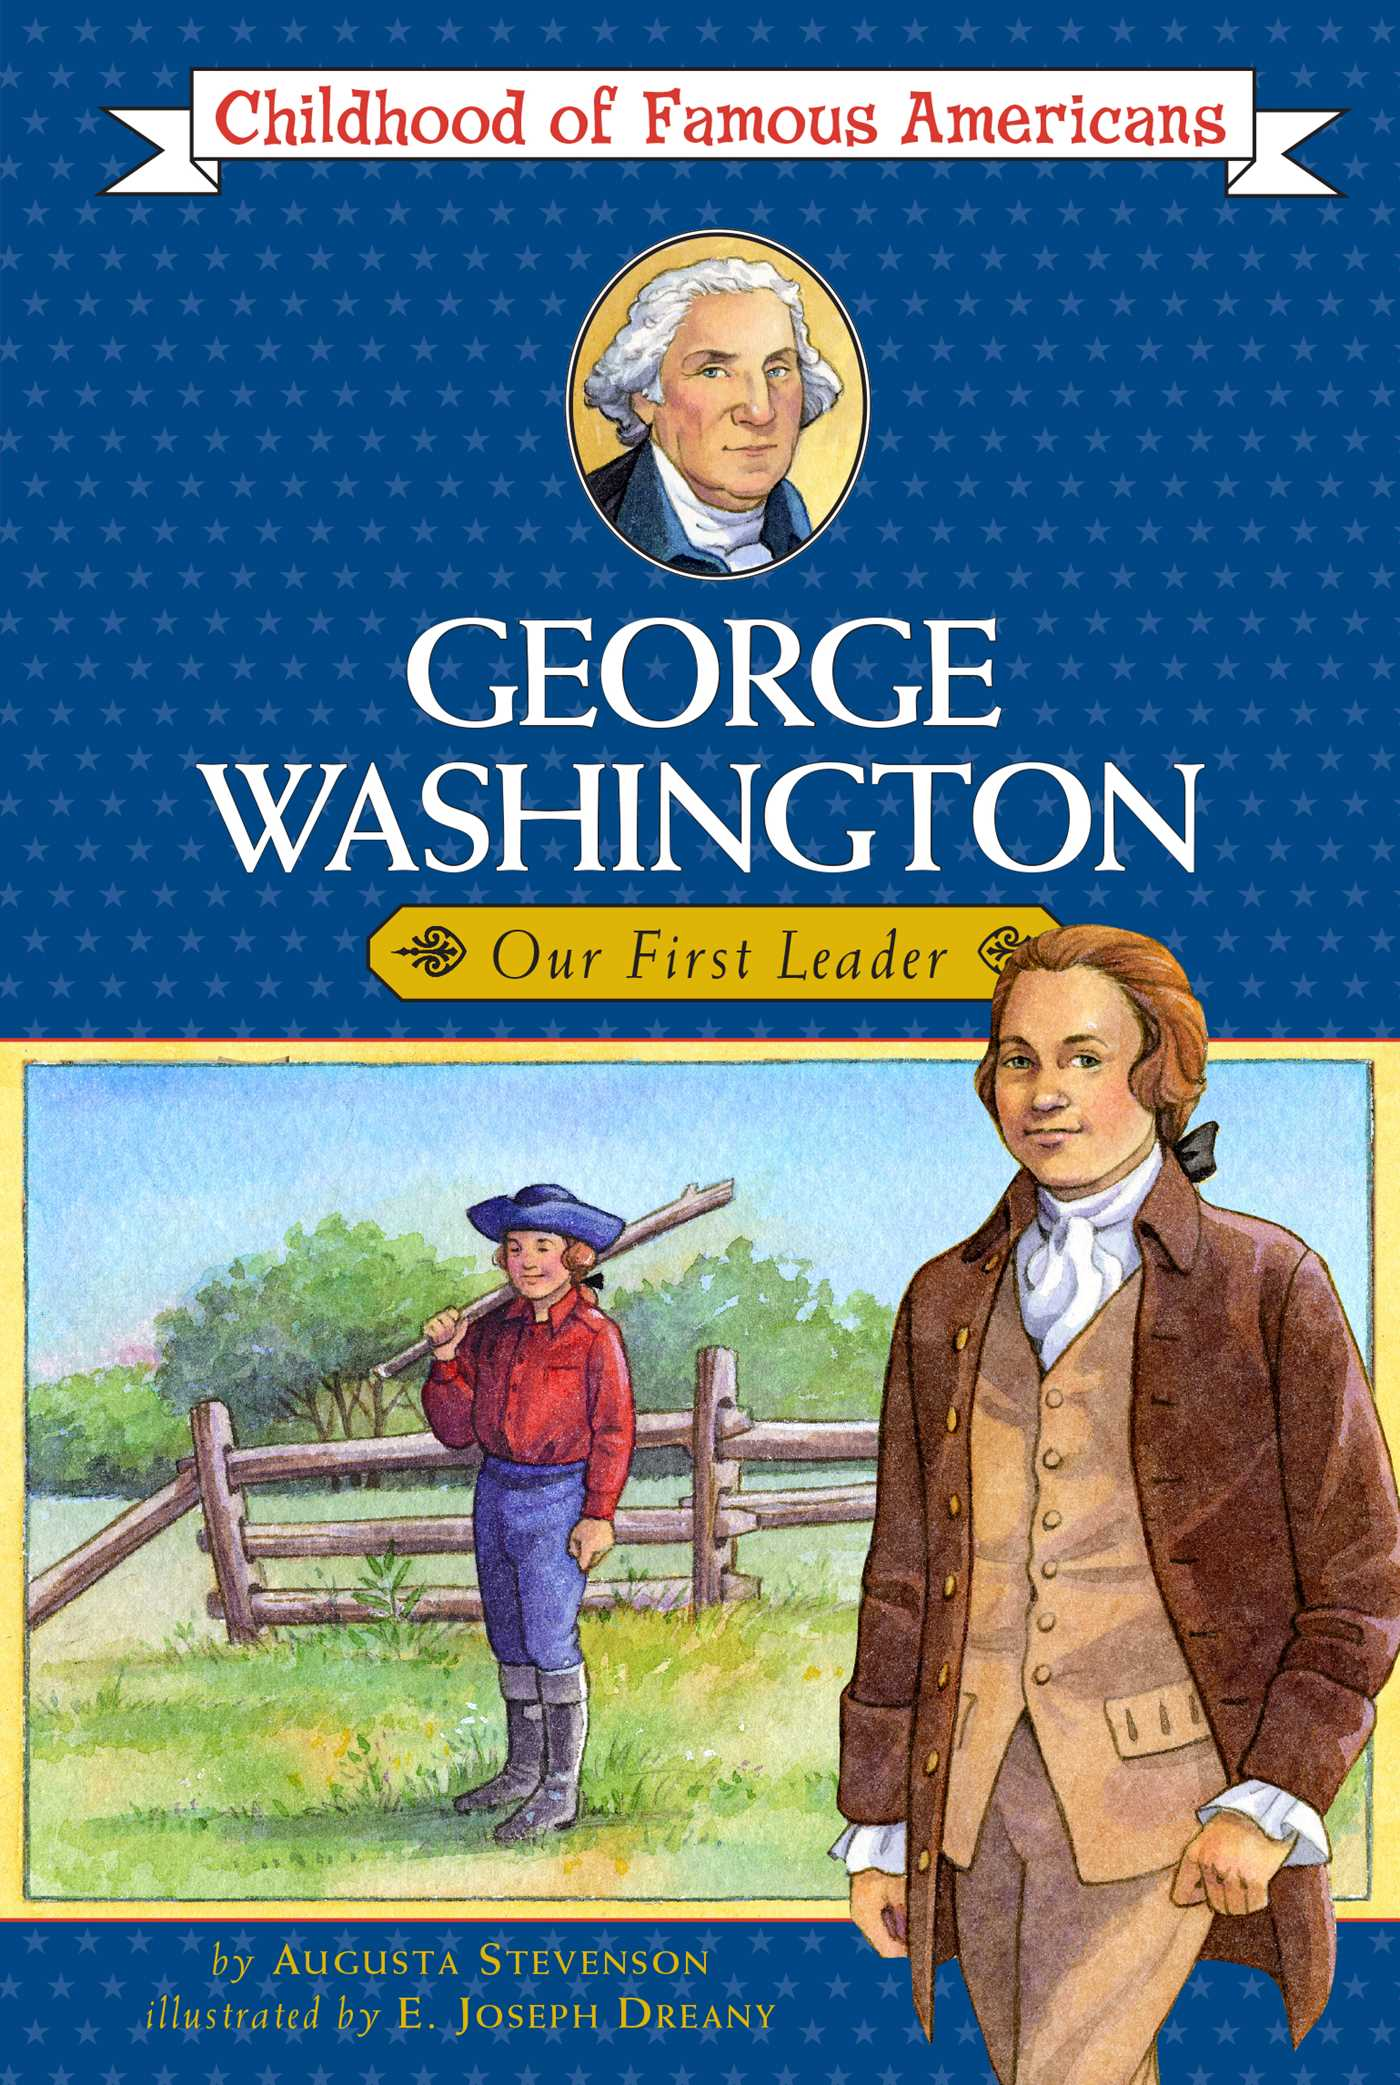 George-washington-9780020421504_hr